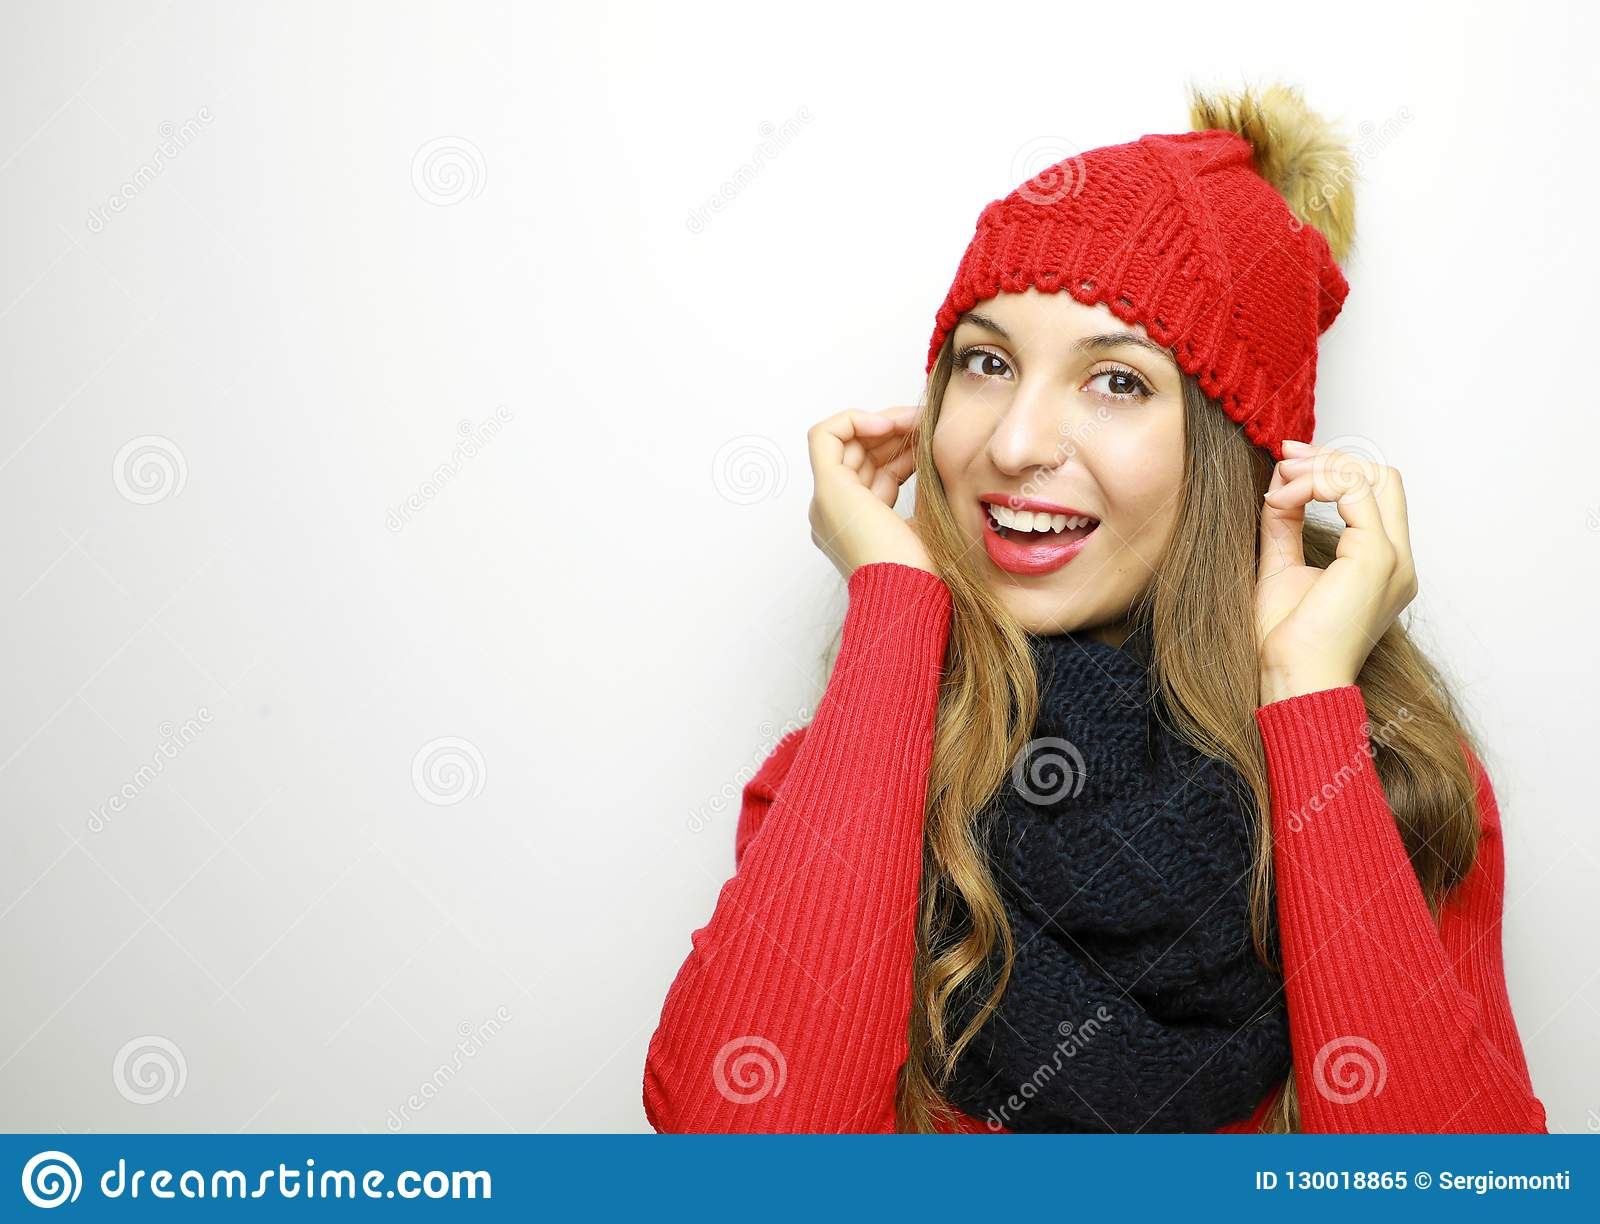 Winter Woman With Wool Hat With Pompon Smiling At Camera On Whit